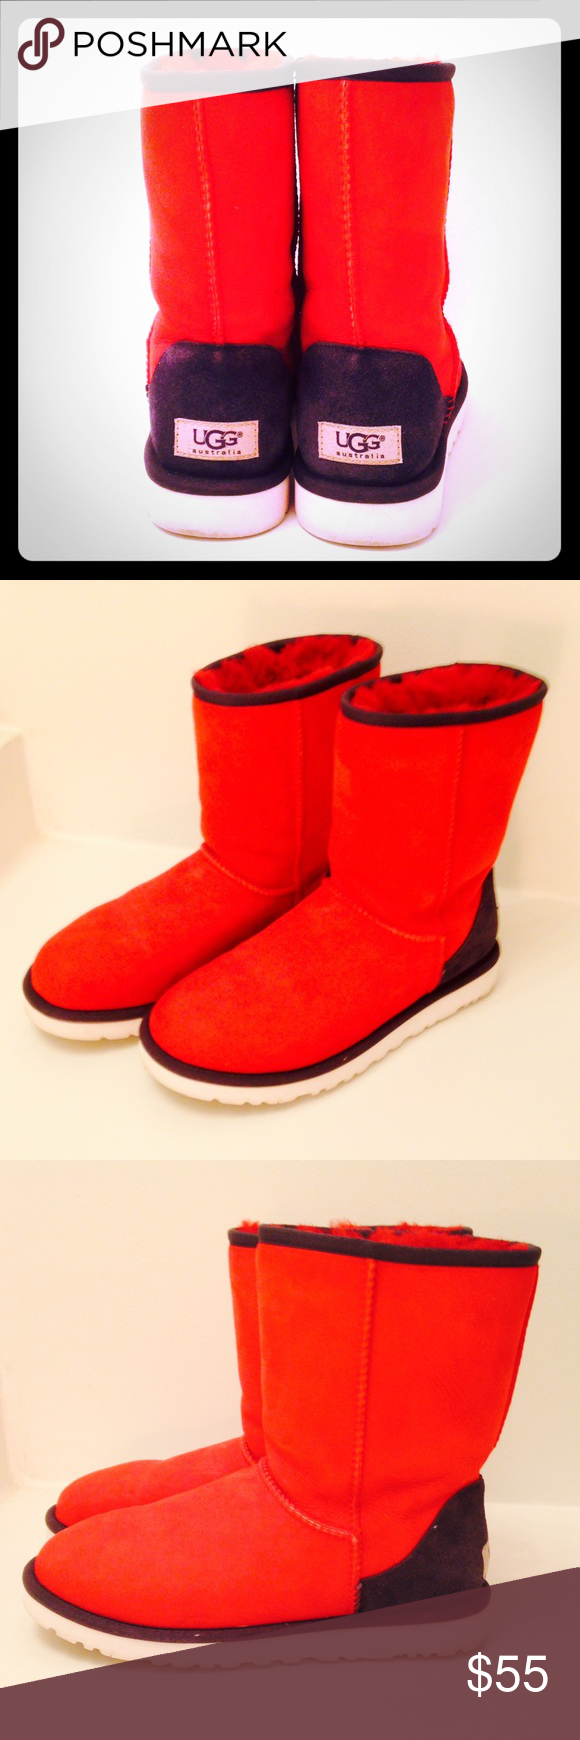 UGG boots UGG BOOTS (Gently used) Size: 7 Patriotic red, white, and blue short UGG boots. Keep your feet warm in the fall and winter months and look ...